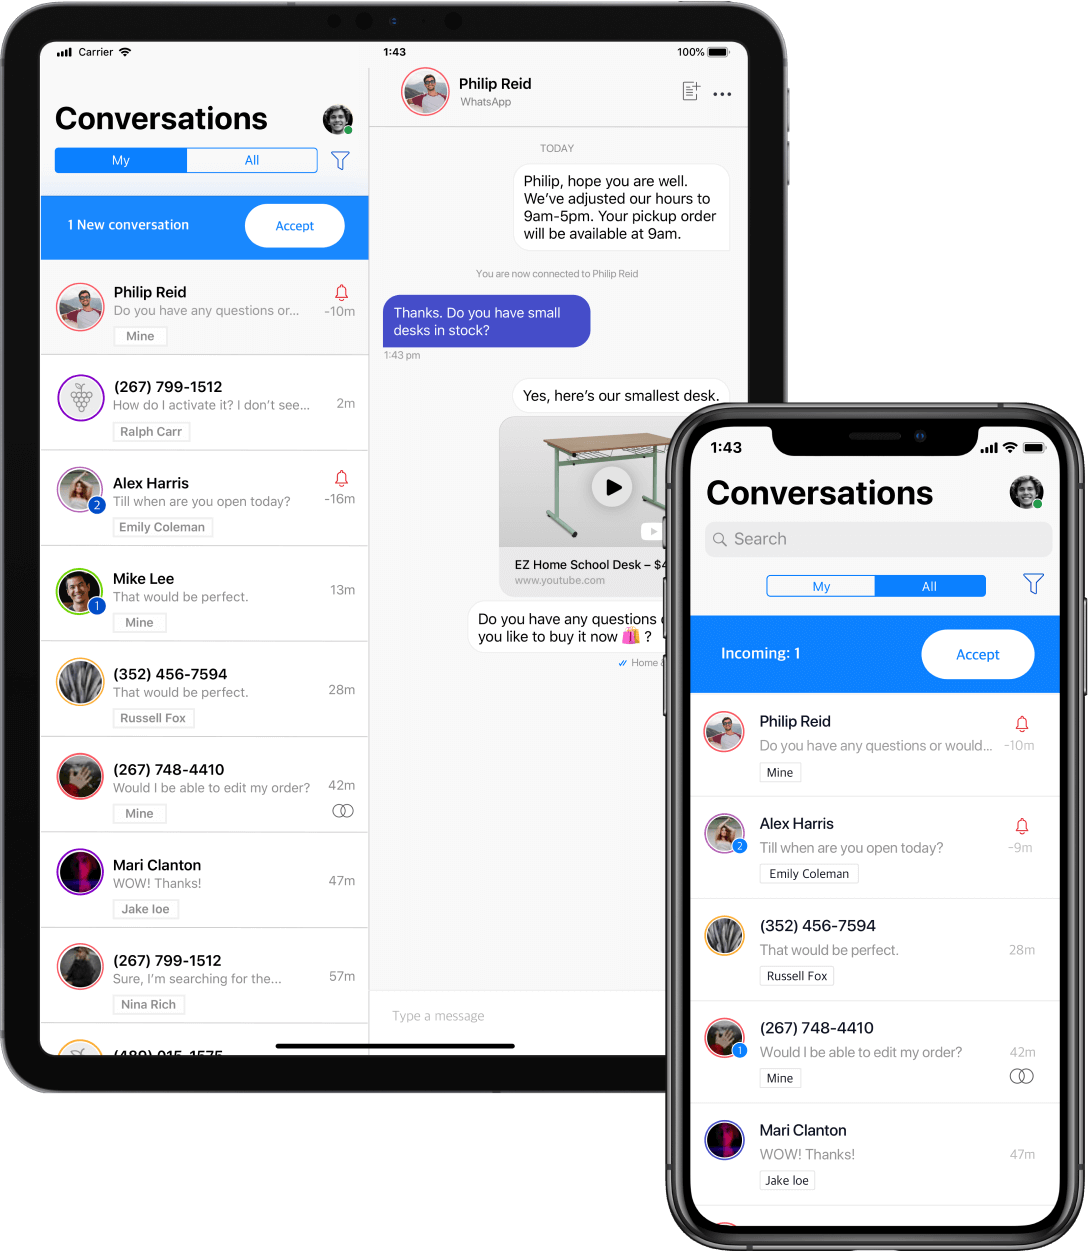 Showing how Conversation Manager can be used on mobile devices